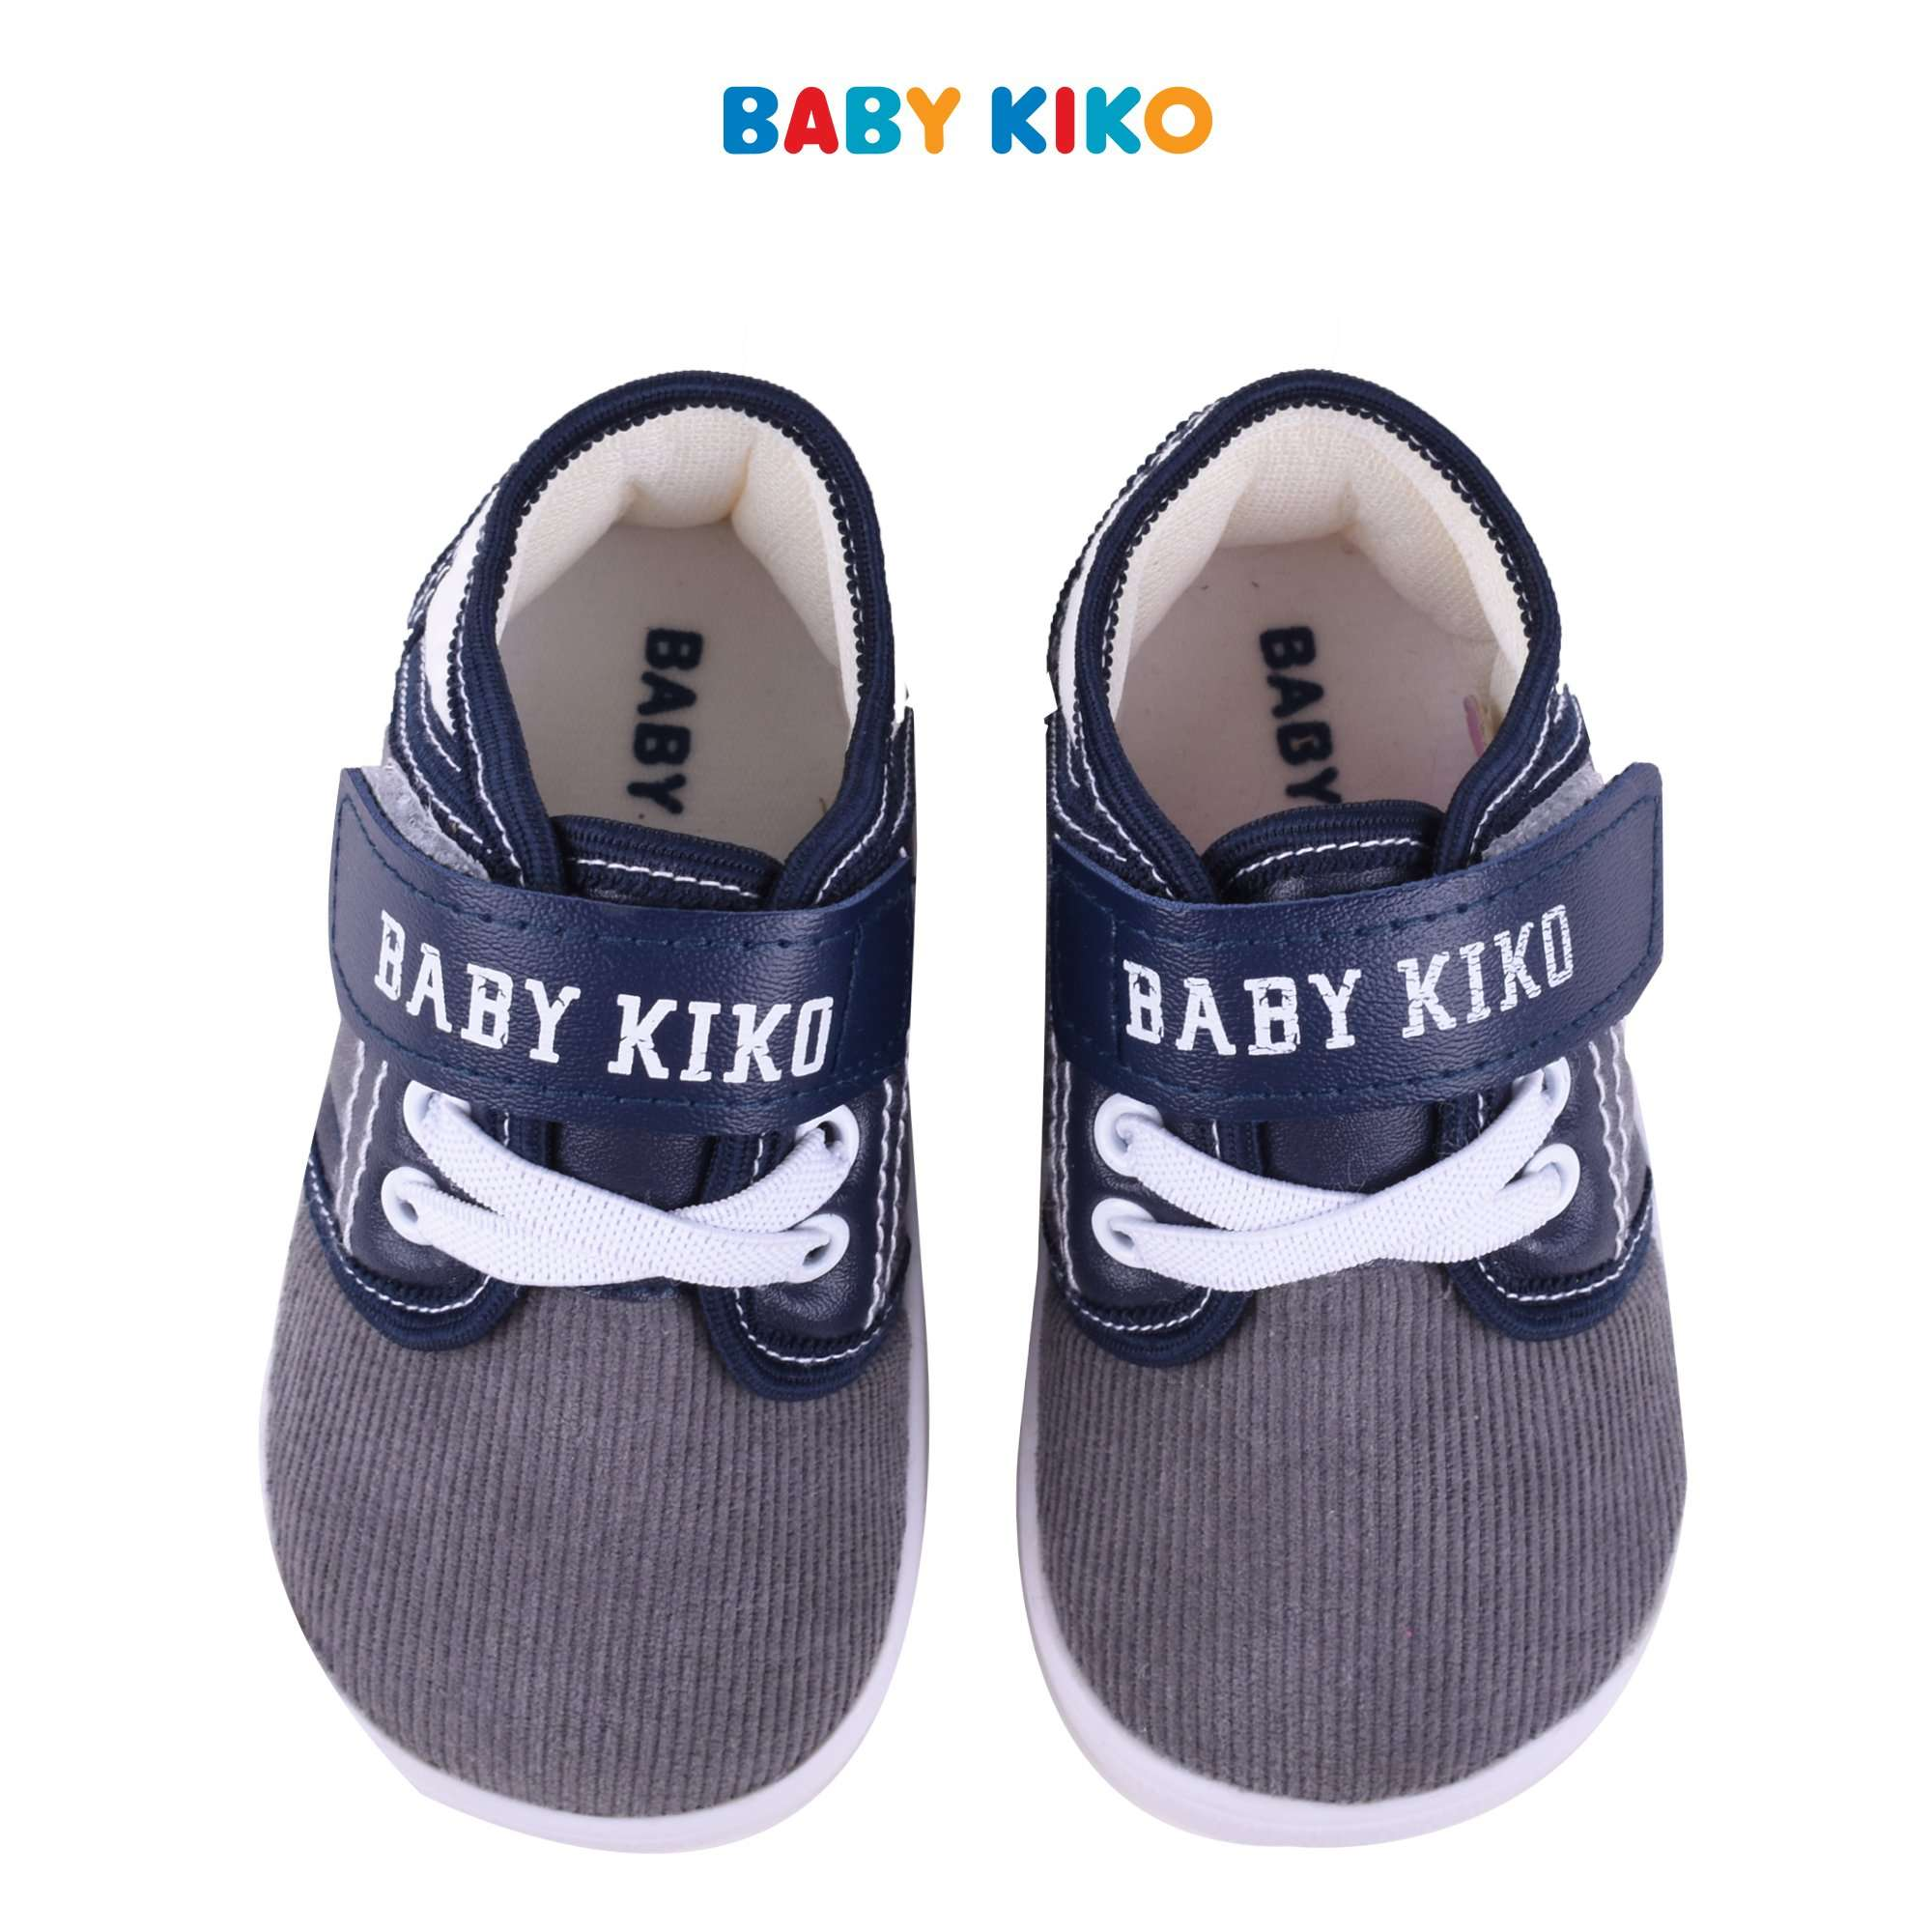 Baby KIKO Toddler Boy Textile Shoes- Grey B922106-5089-G5 : Buy Baby KIKO online at CMG.MY